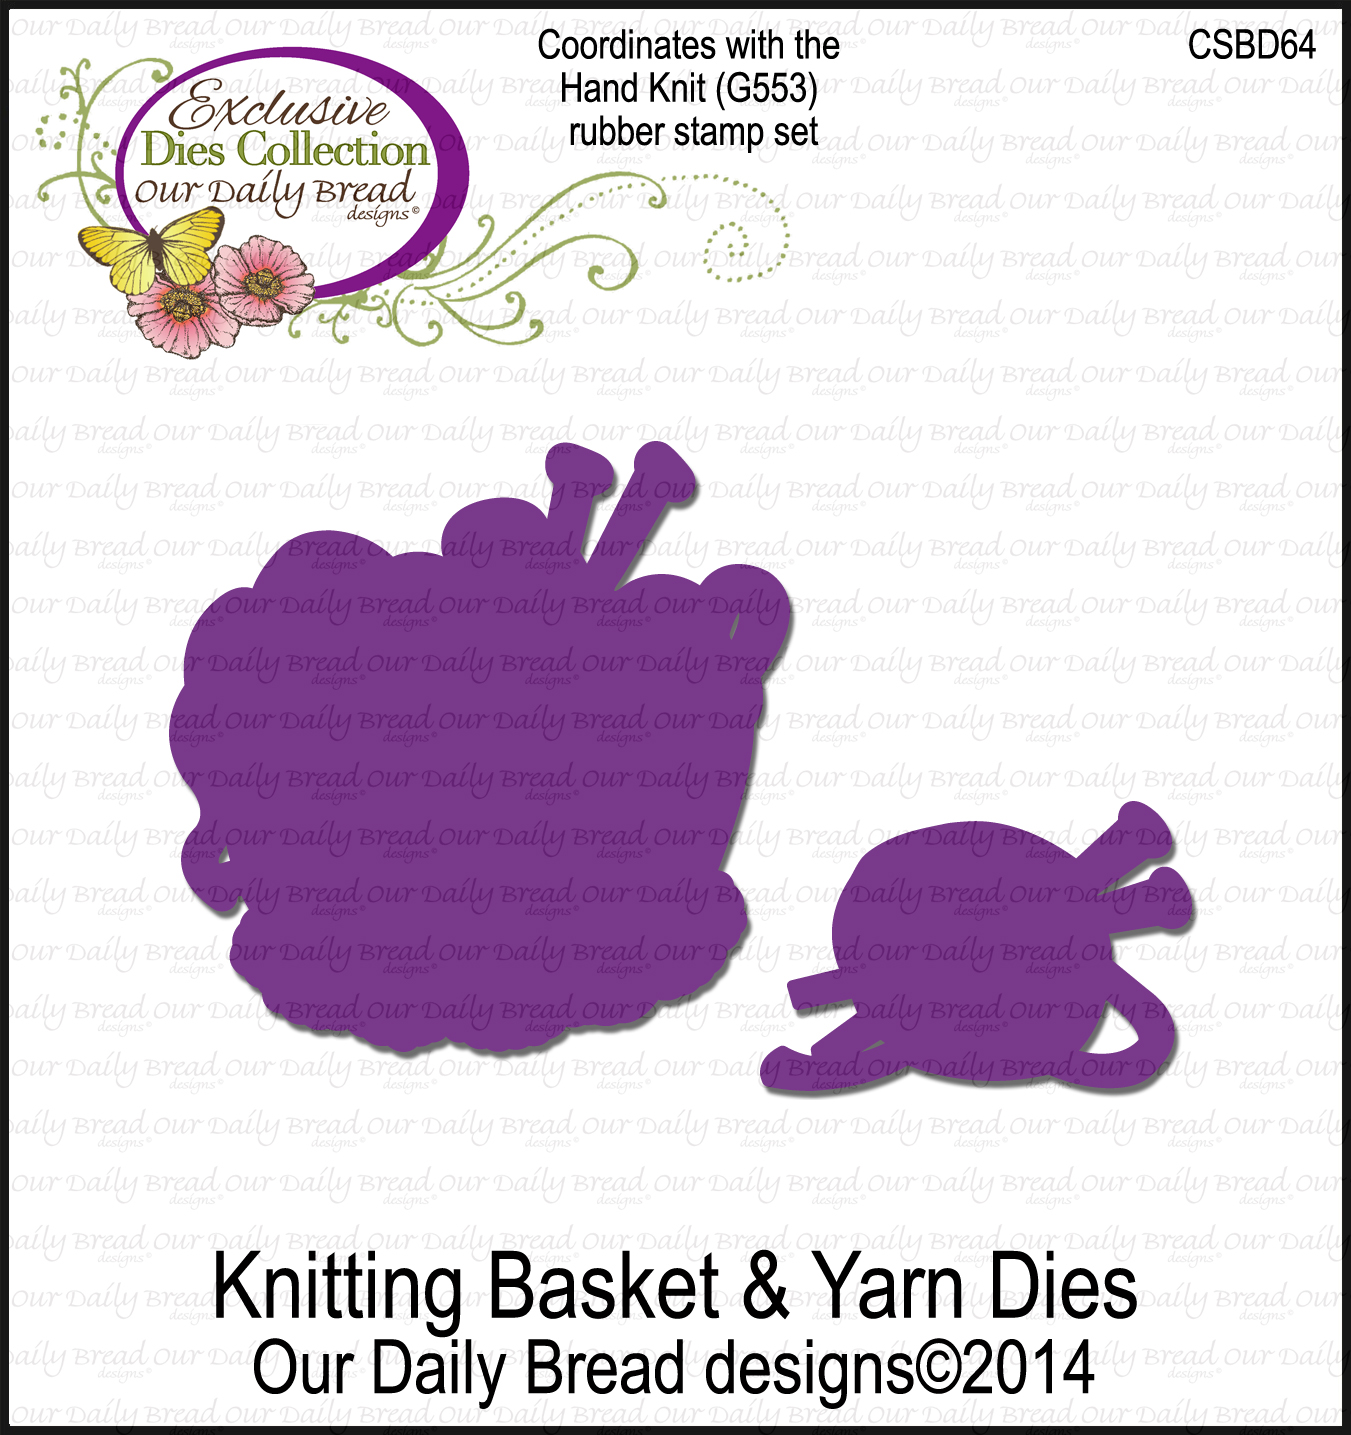 Our Daily Bread Designs Custom Knitting Basket and Yarn Dies